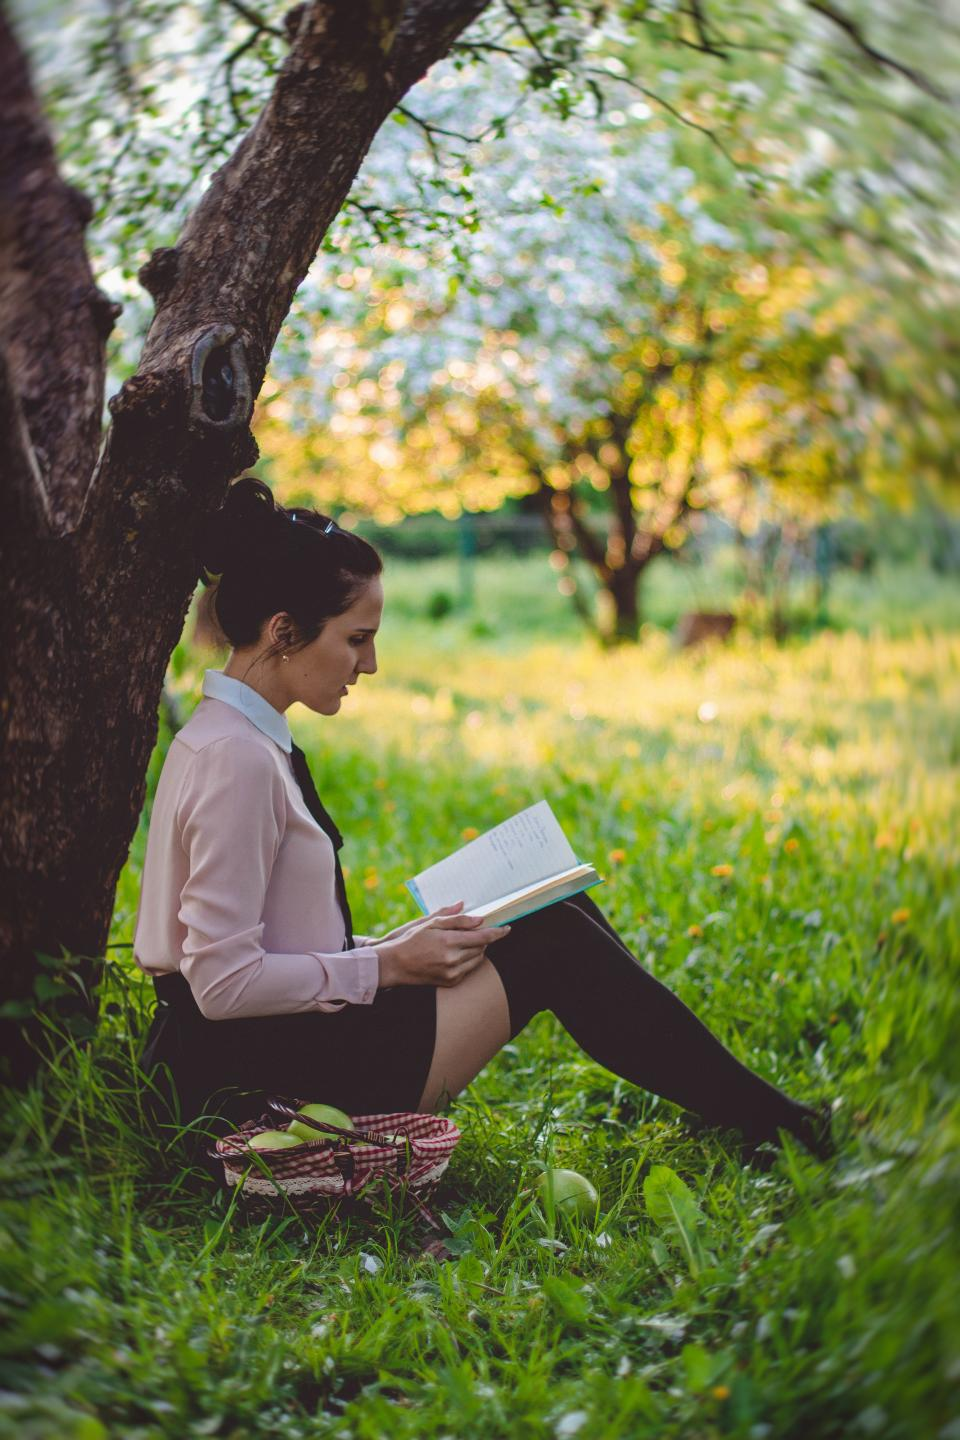 people girl woman sitting reading book alone fashion clothing nature plant tree outdoor green grass petal travel blur bokeh basket fruit food